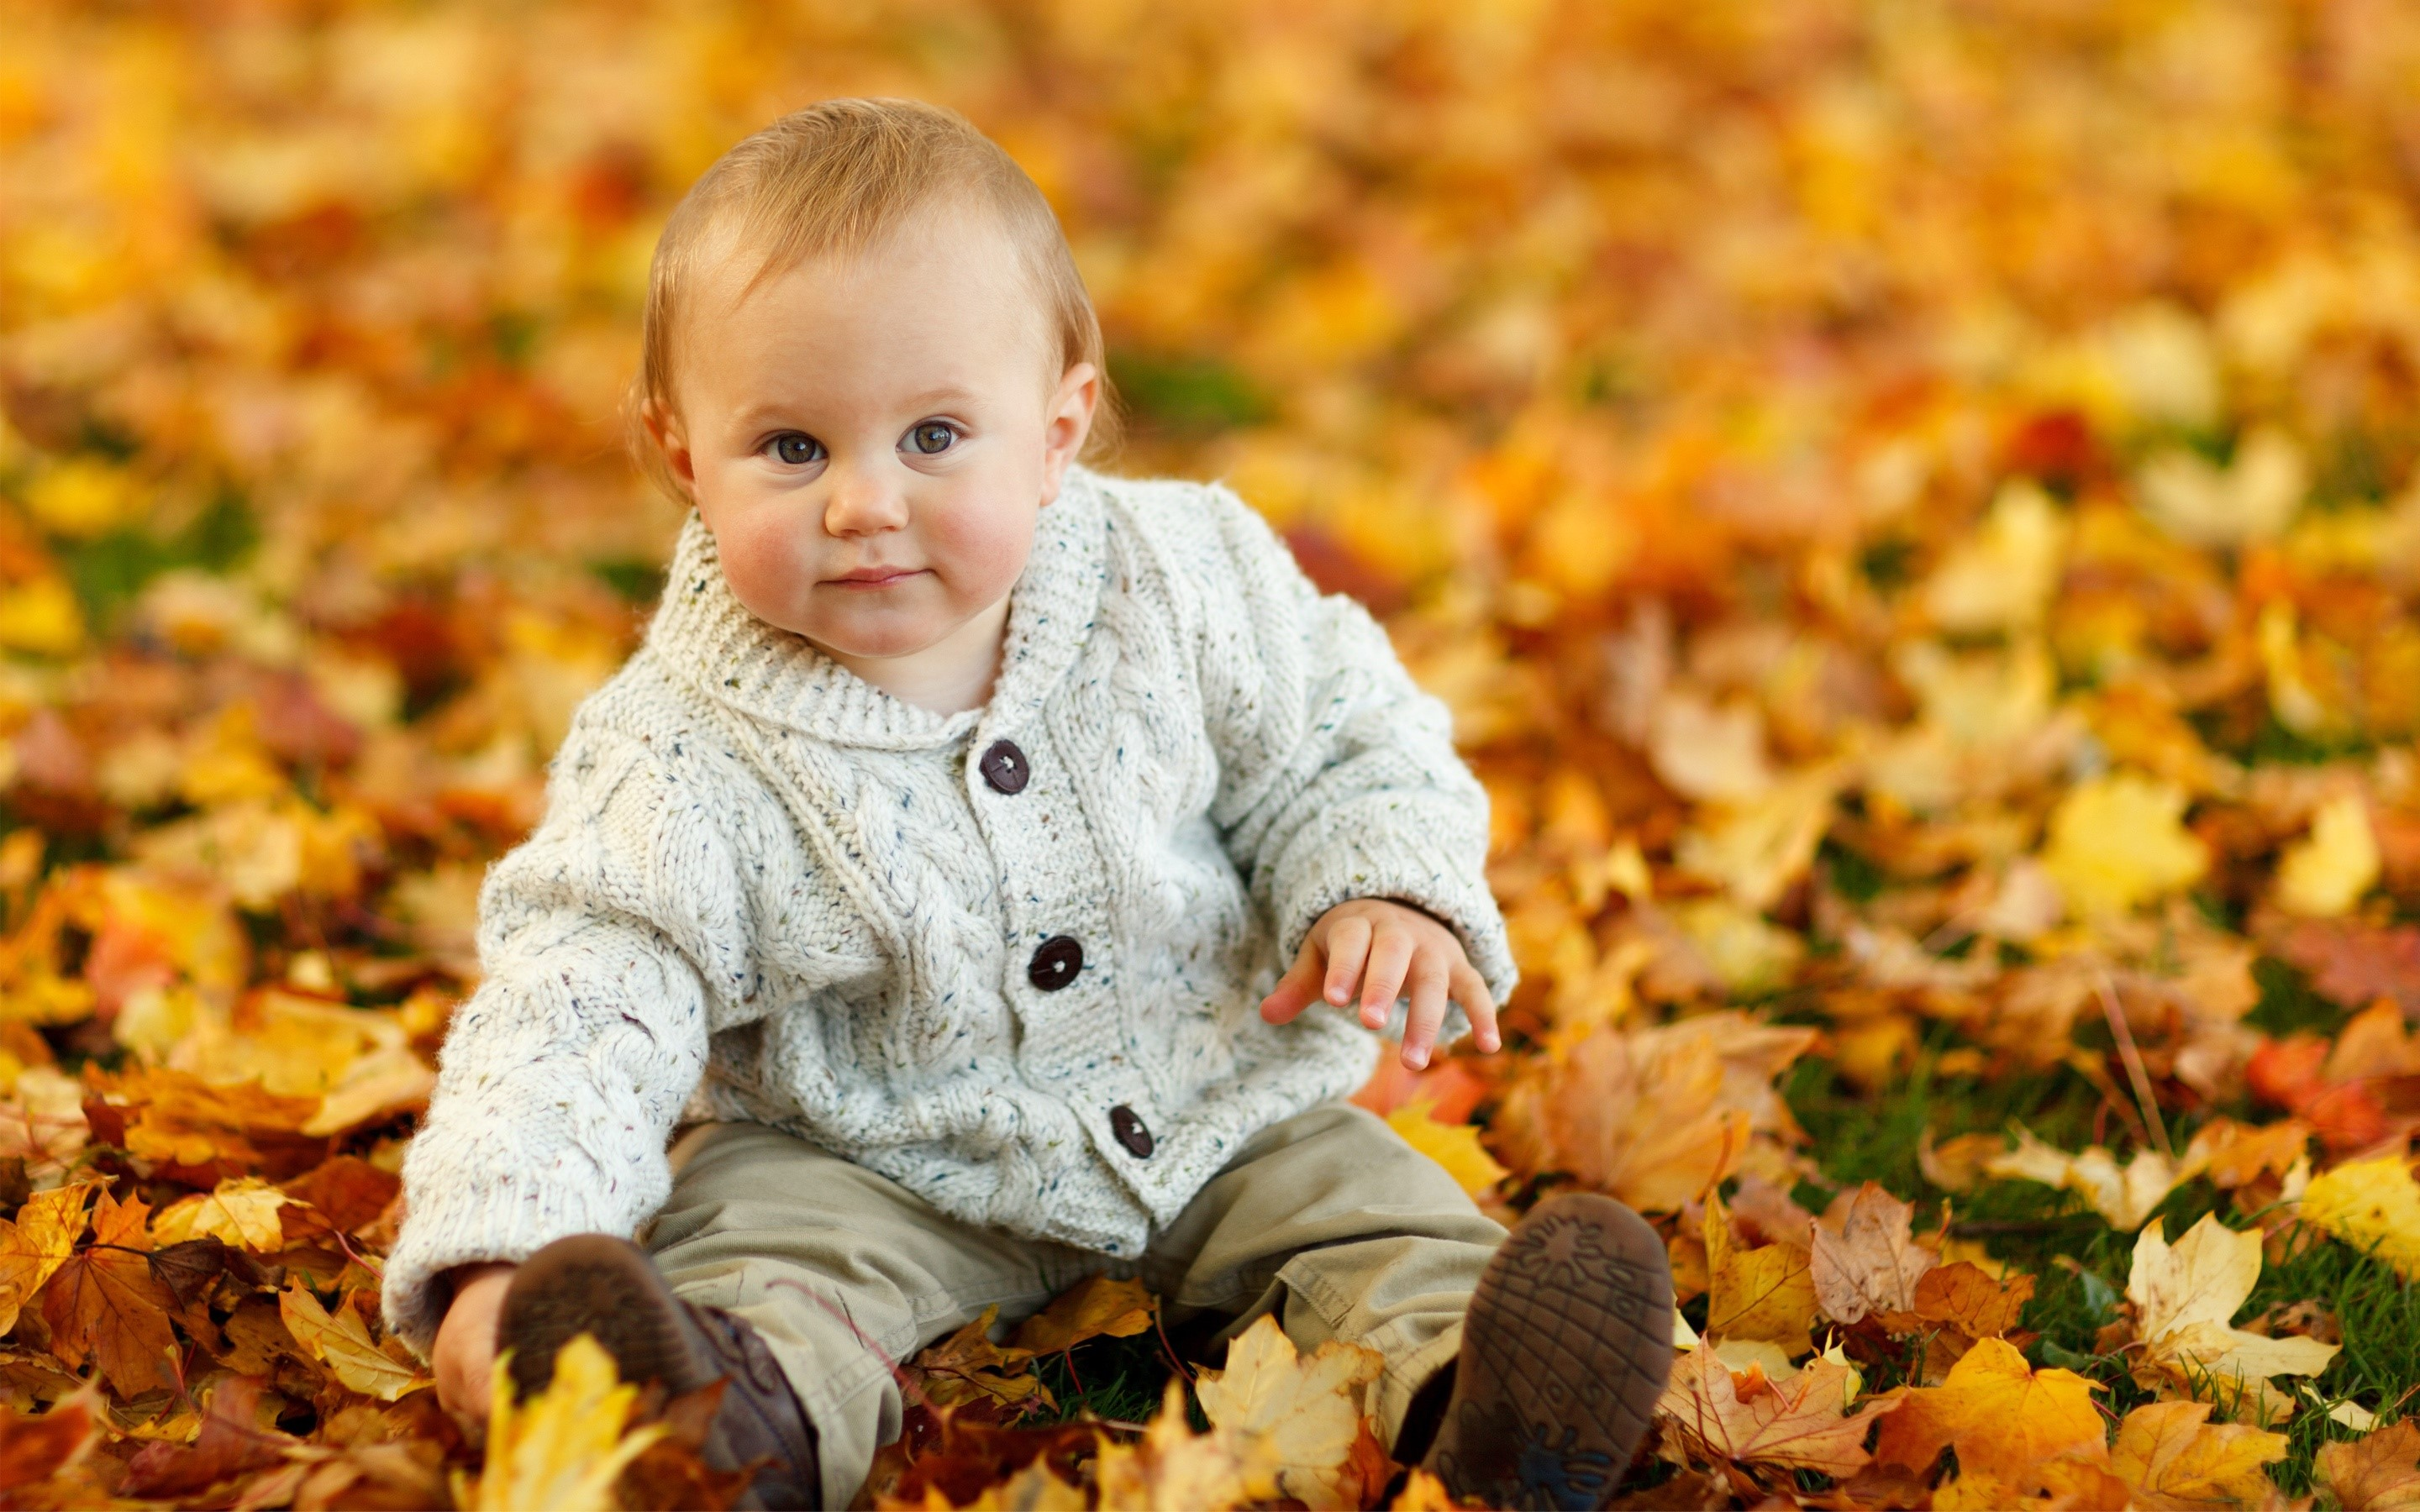 Wallpaper A baby in autumn leaves